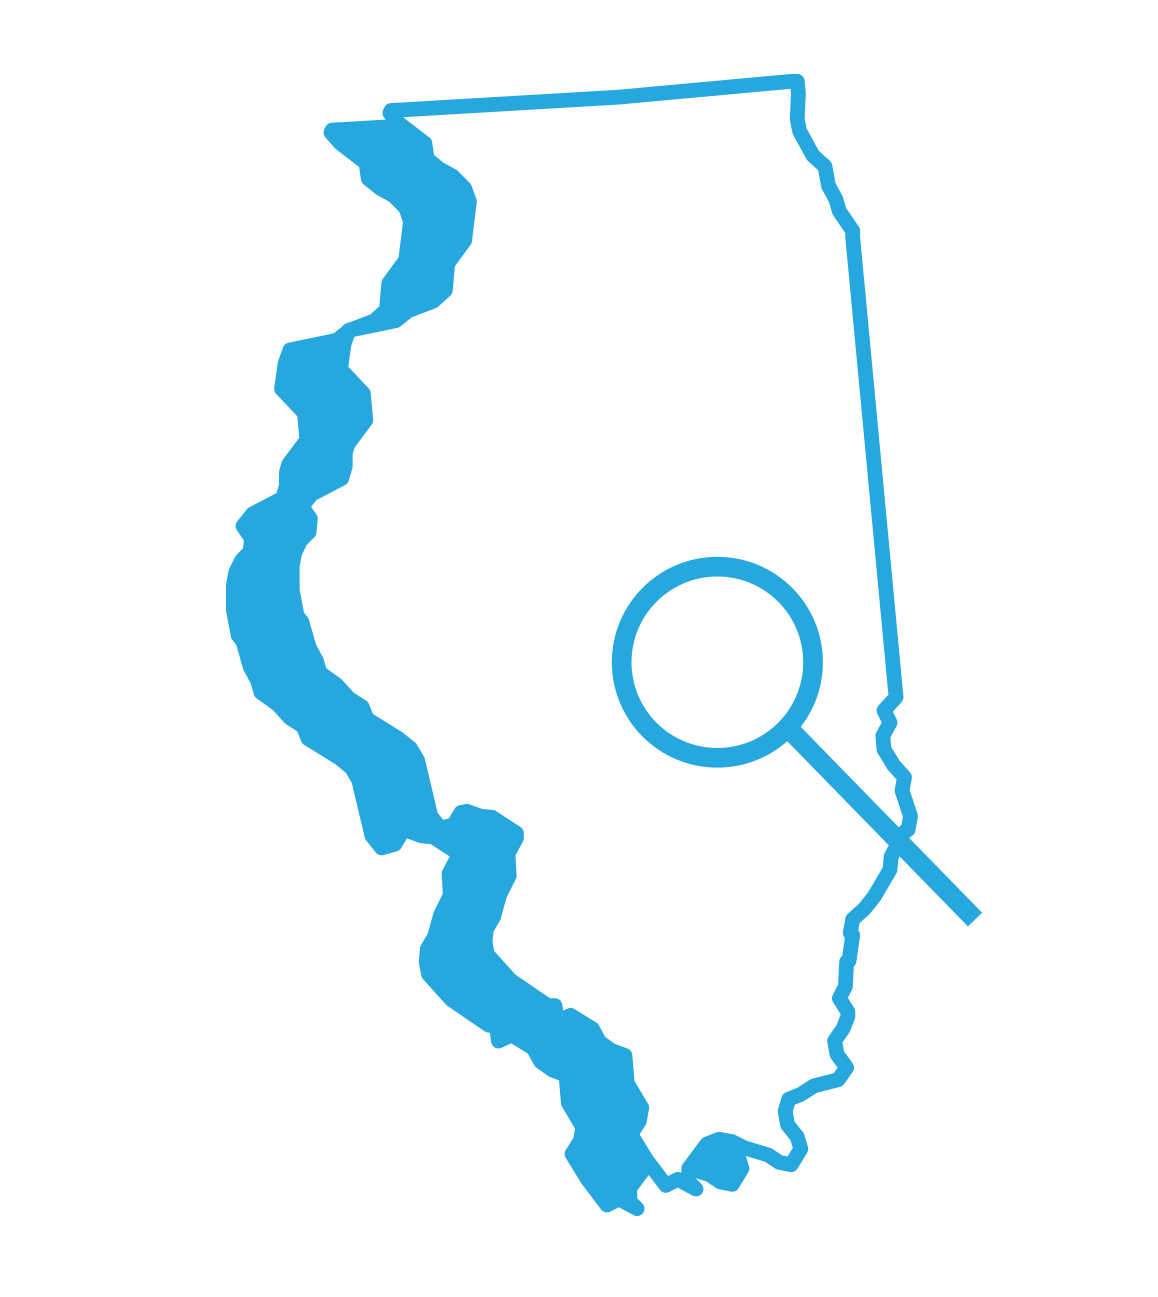 Outline of the State of Illinois with a magnifying glass